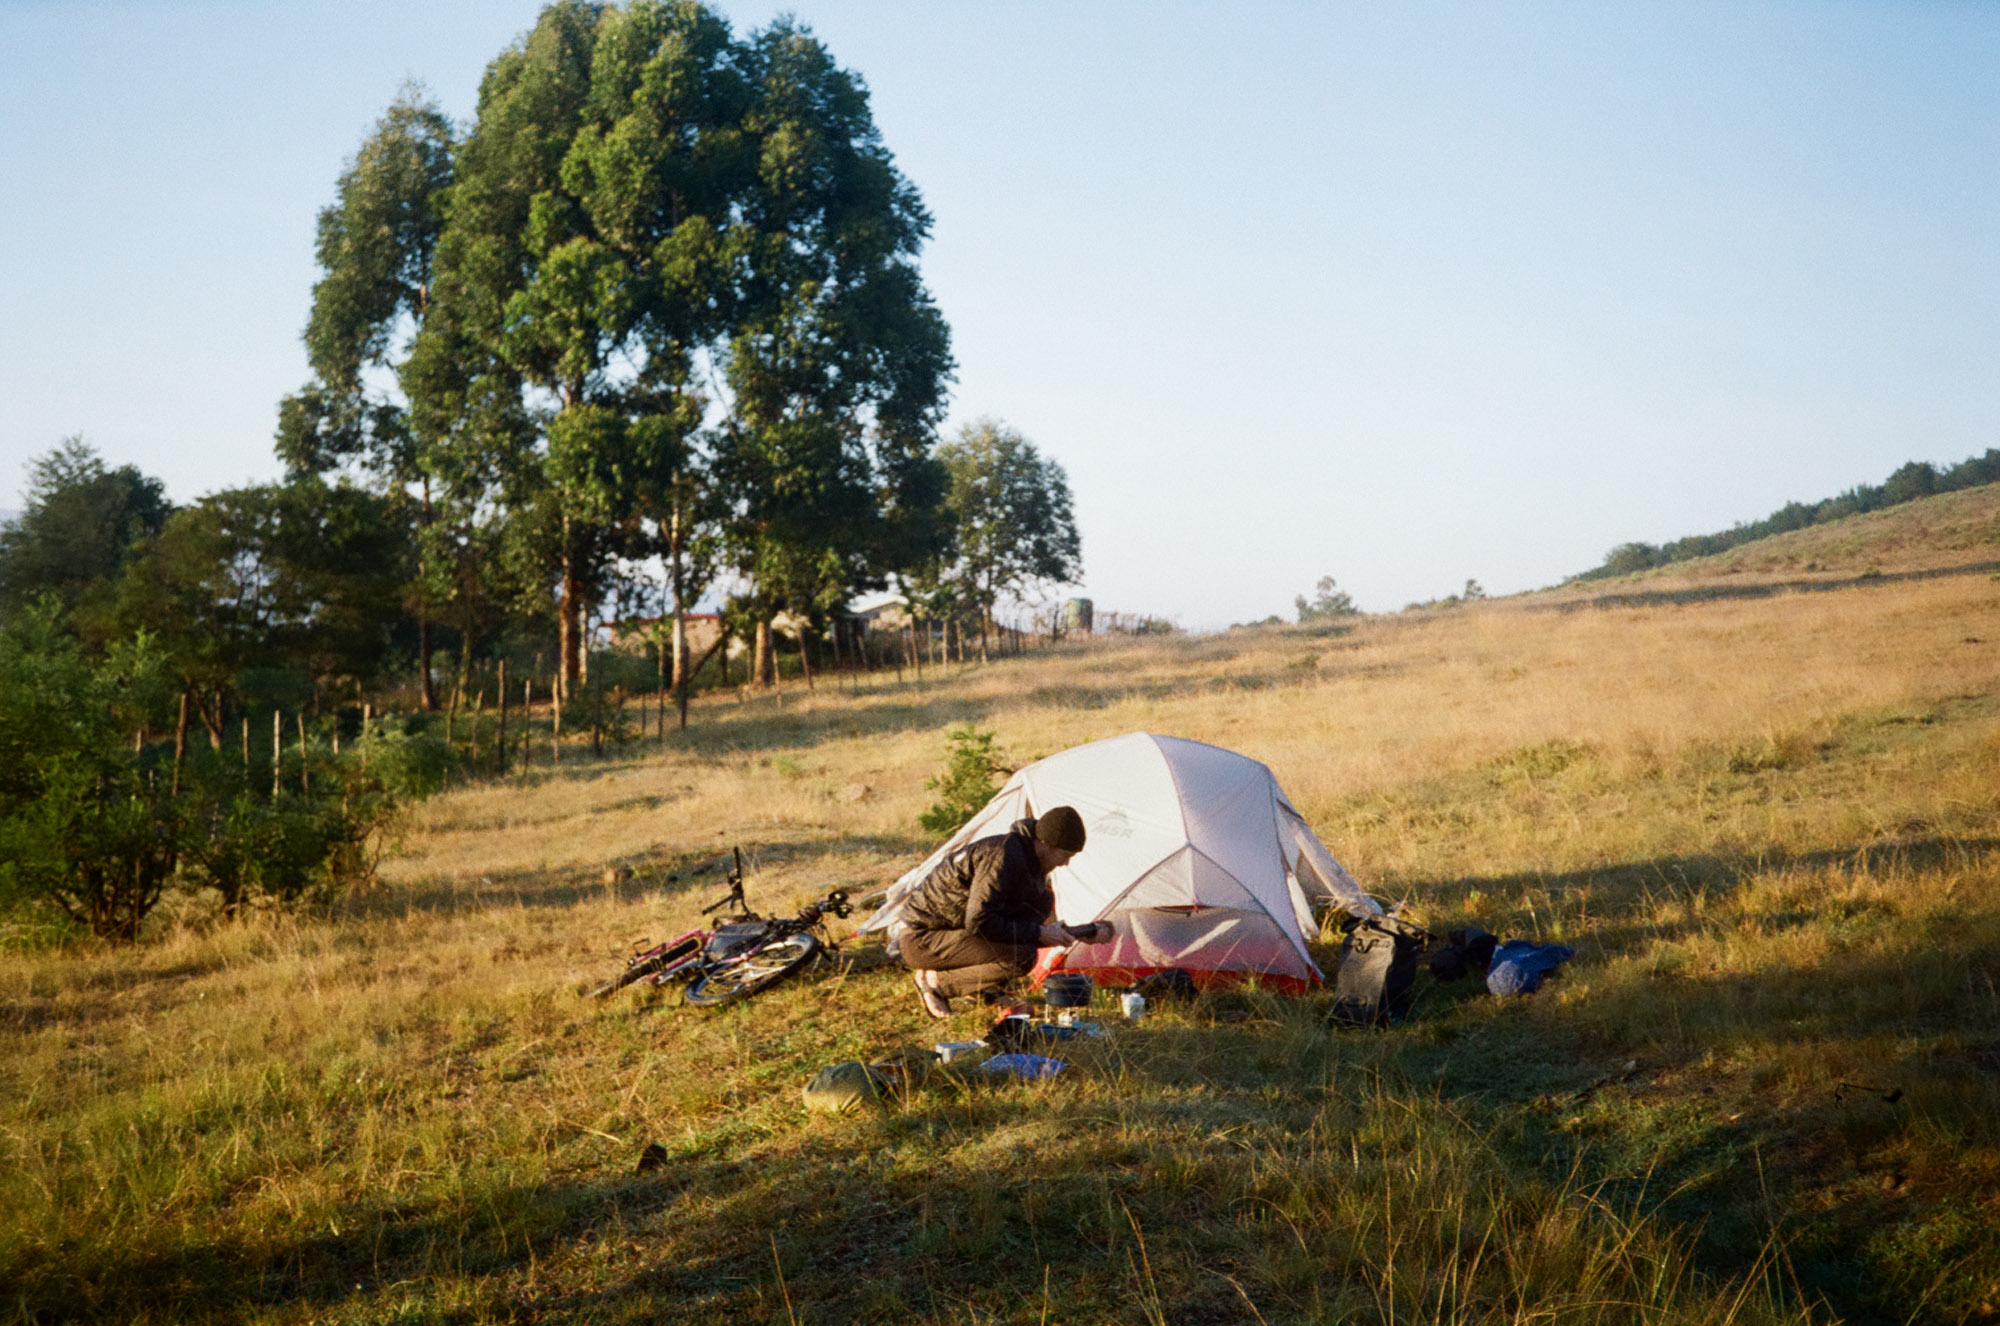 On our first night we met Themba, who let us pitch our tent in the field next to his house.